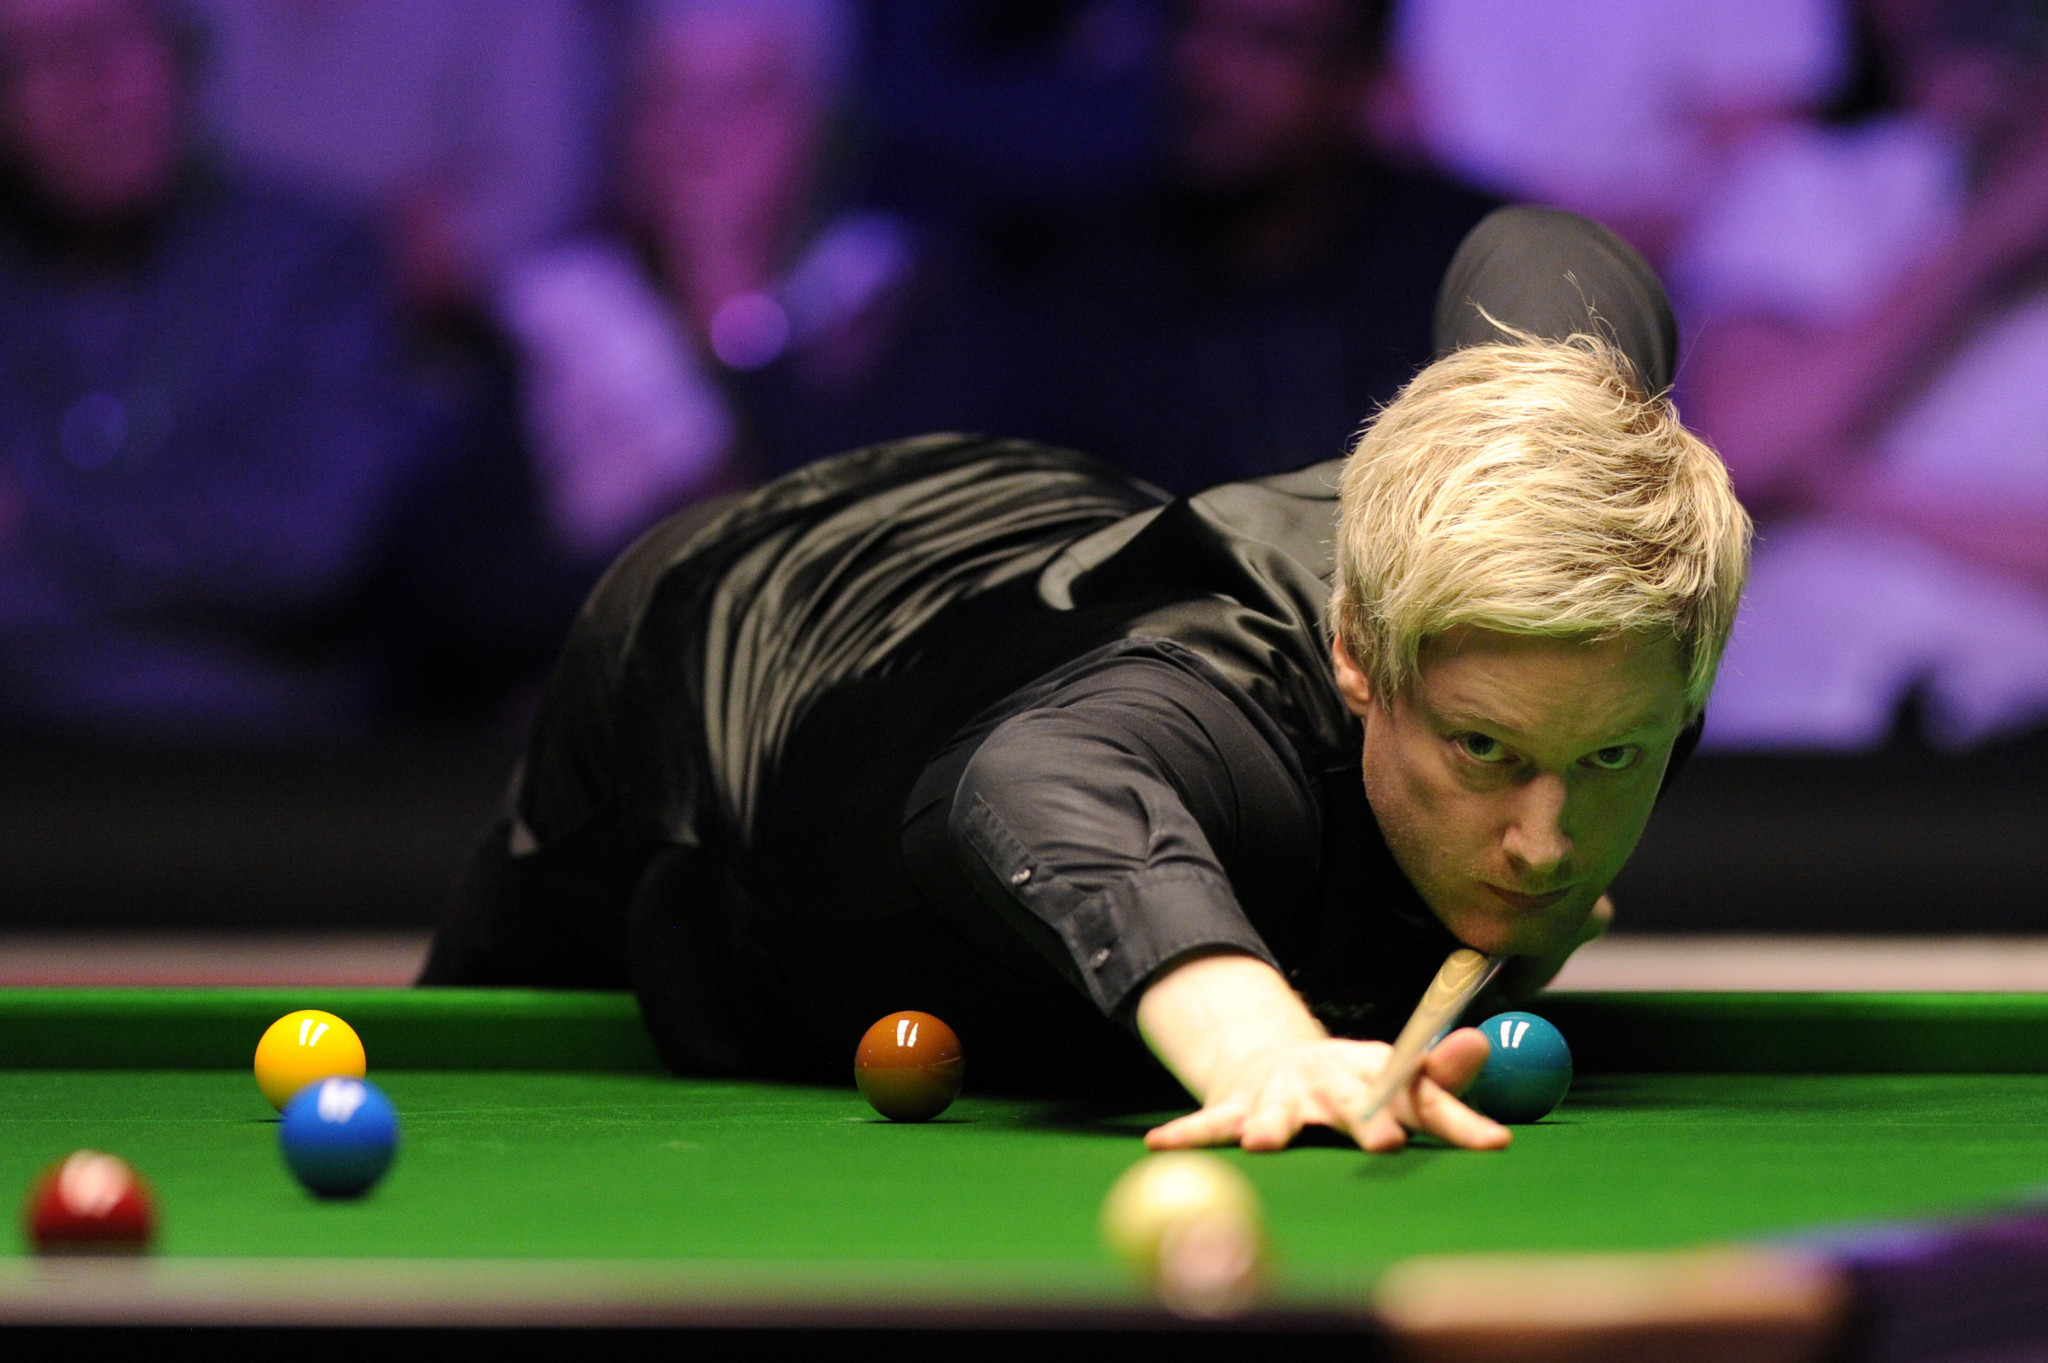 Australia's Neil Robertson is on course to book his place in the third round ©Getty Images